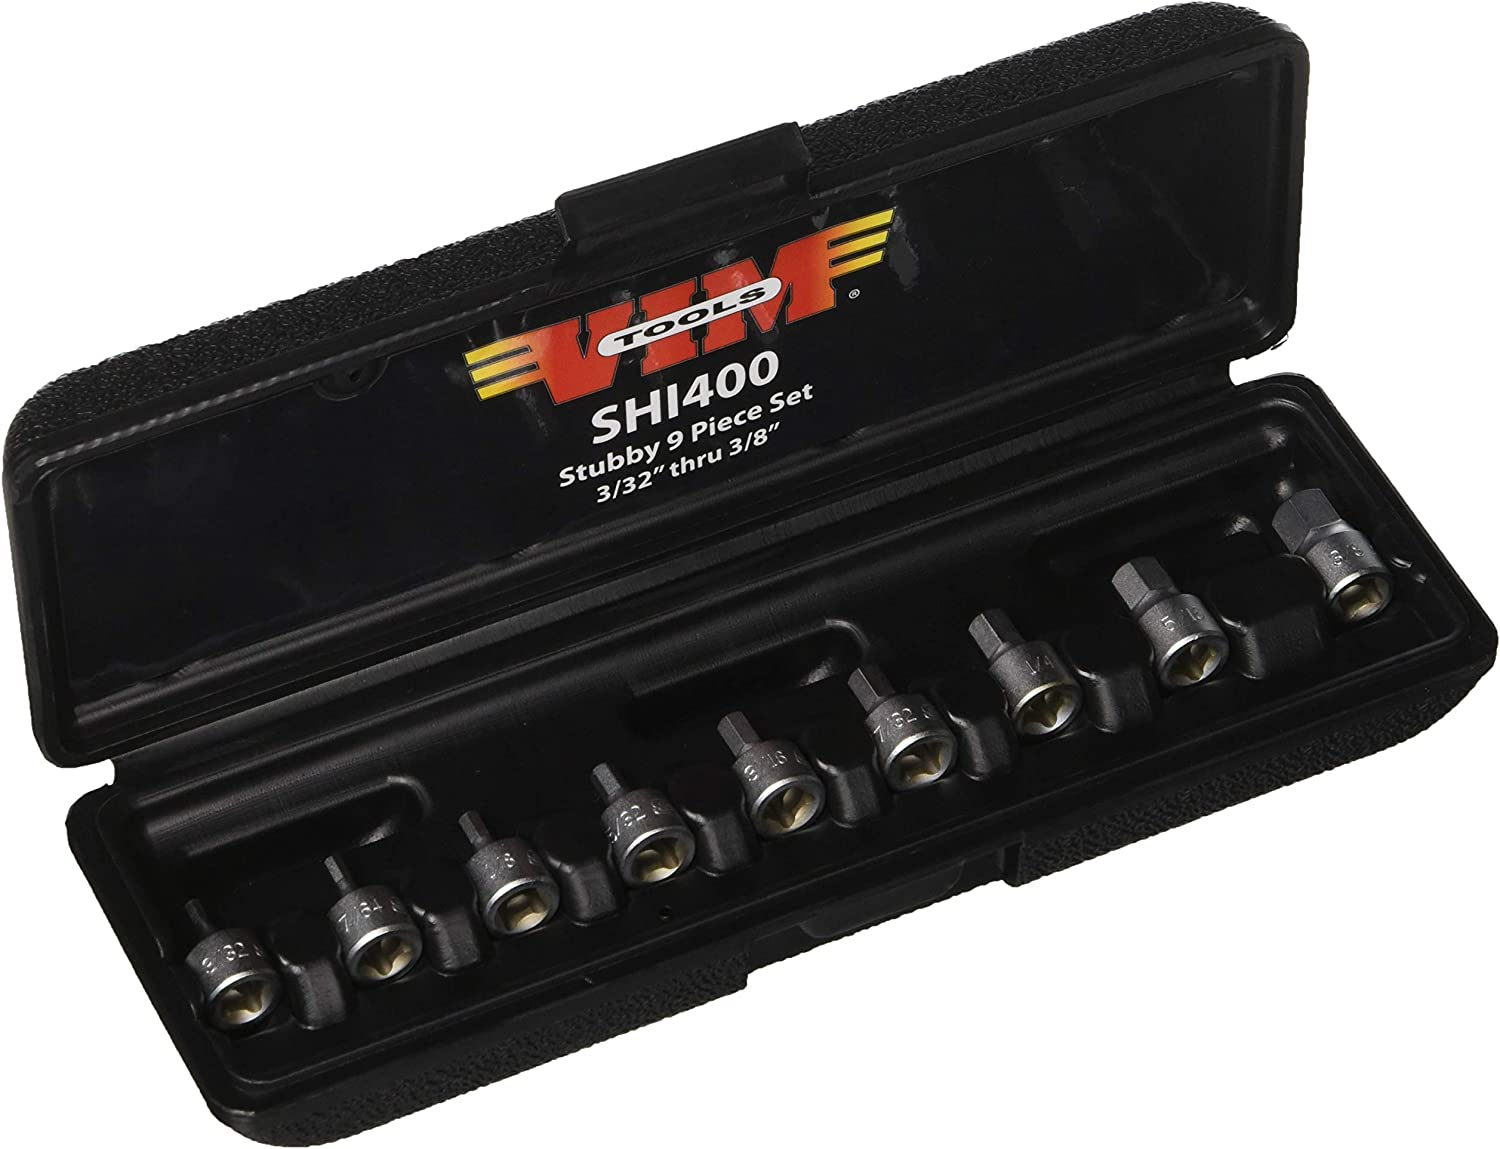 1//4-Inch square drive hex drivers 9 piece SAE VIM Hand Tools Stubby Hex Drive Set